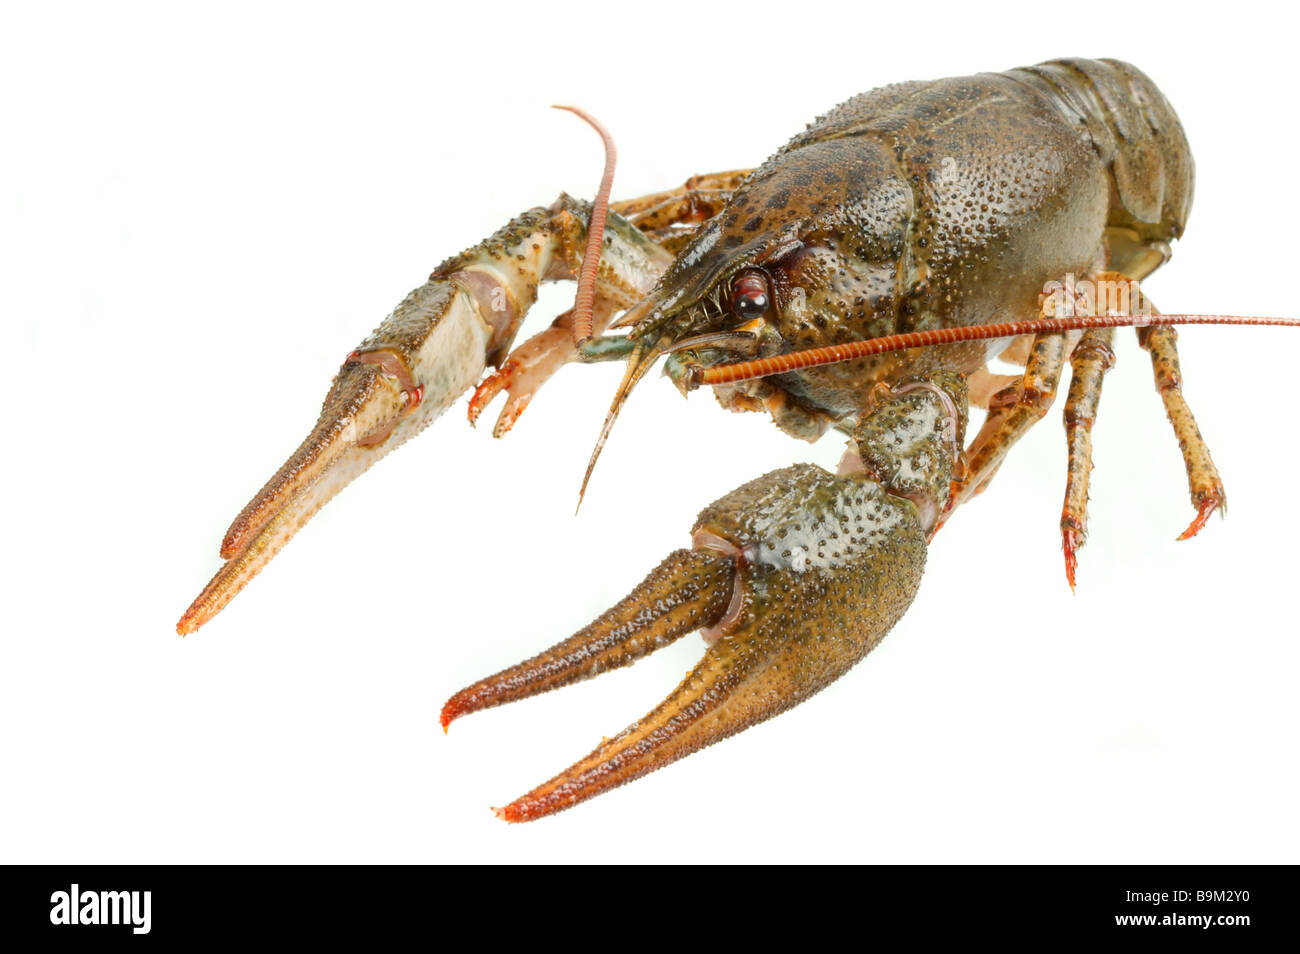 River crayfish on a white background It is very tasty and dietary food - Stock Image